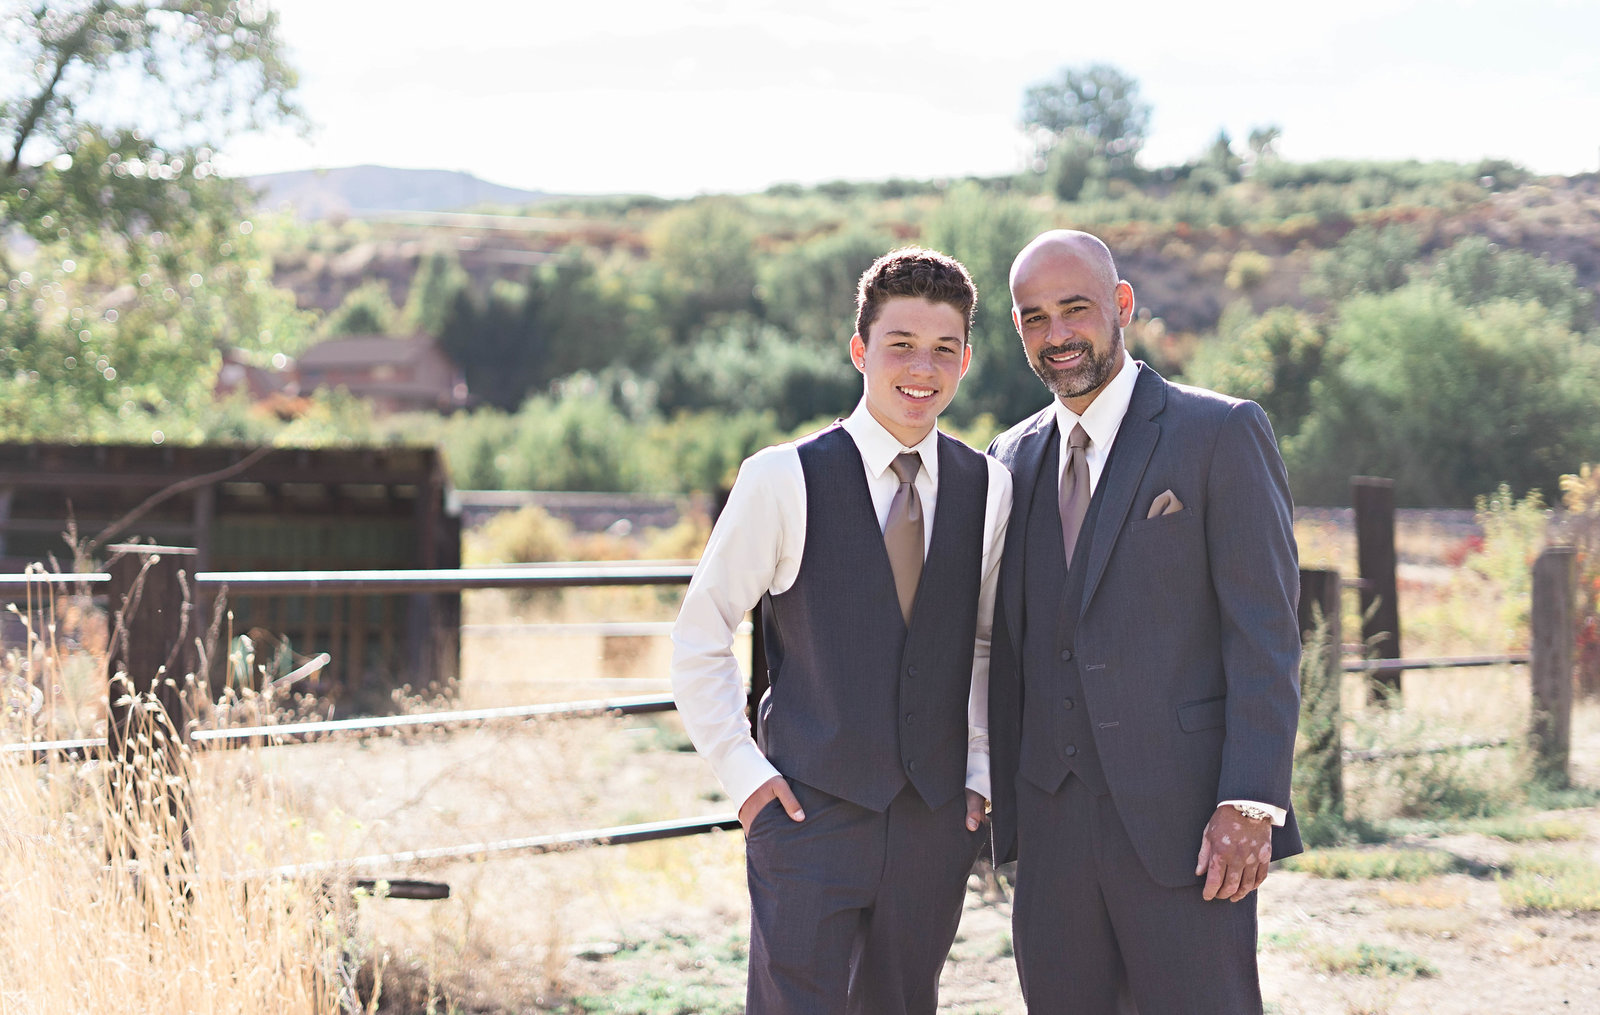 Family is in style at stylish Wenatchee wedding